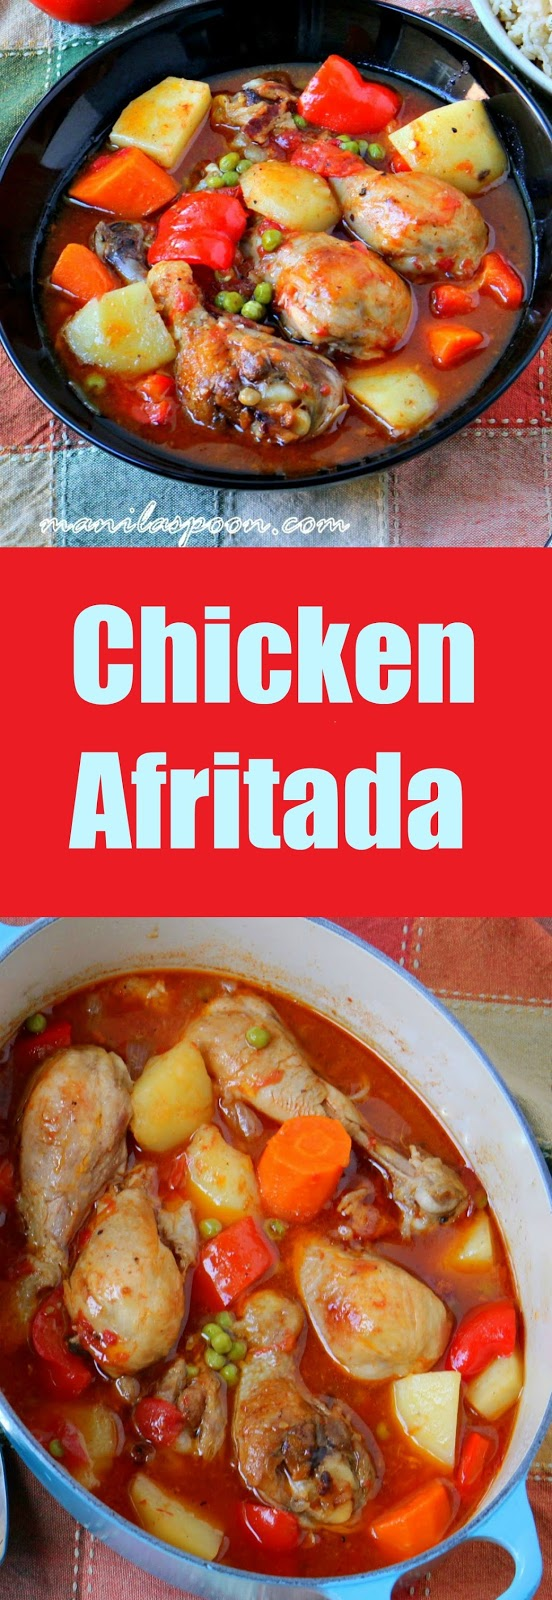 Chicken afritada manila spoon tender and delicious chicken slowly simmered in seasoned tomato sauce chicken afritada enjoy with forumfinder Gallery